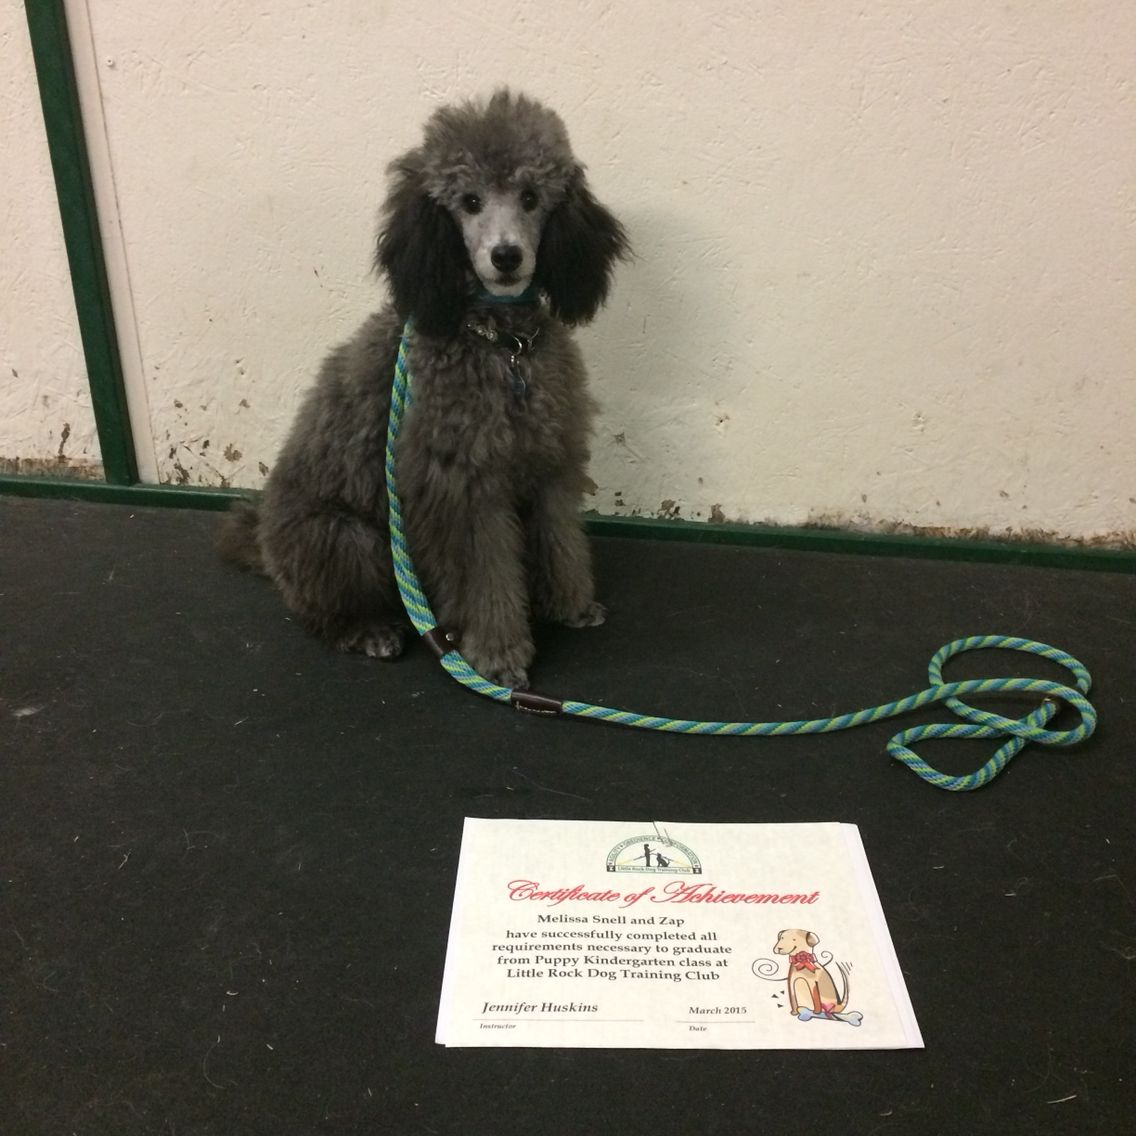 Zap graduating from first puppy class. (With images